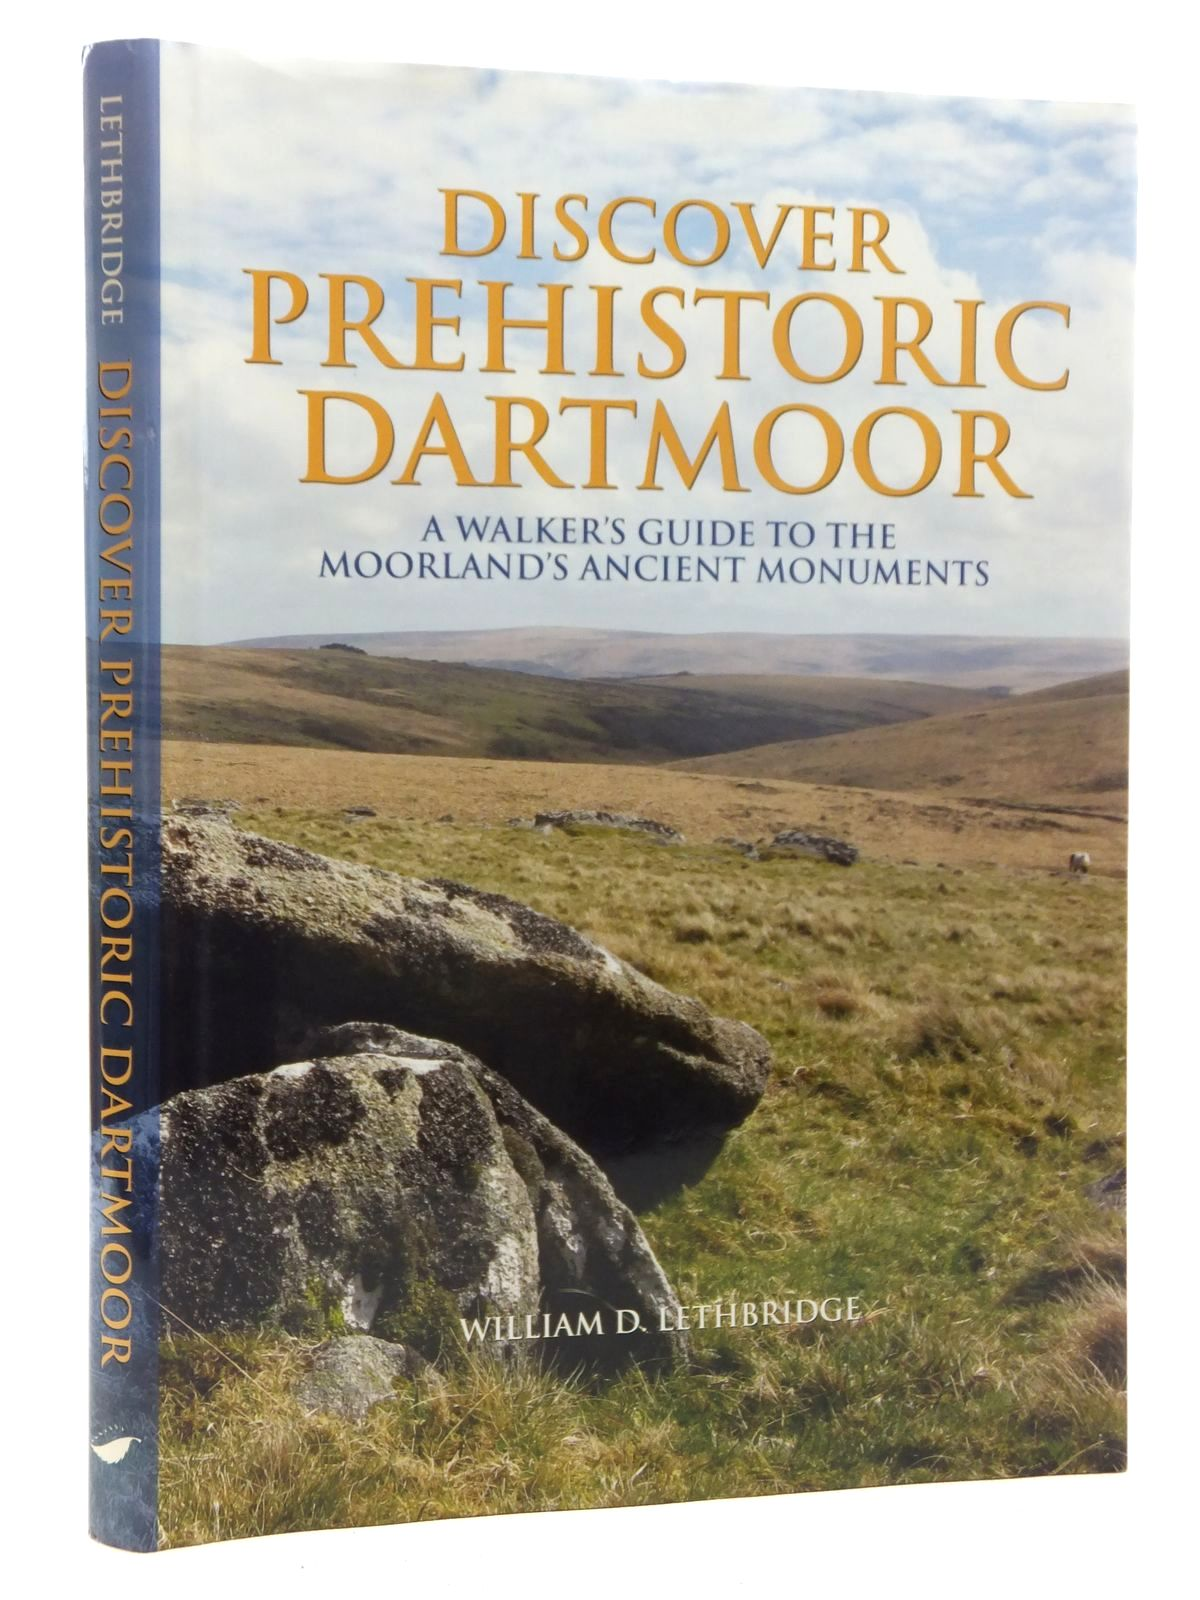 Photo of DISCOVER PREHISTORIC DARTMOOR written by Lethbridge, William D. published by Halsgrove (STOCK CODE: 2123921)  for sale by Stella & Rose's Books